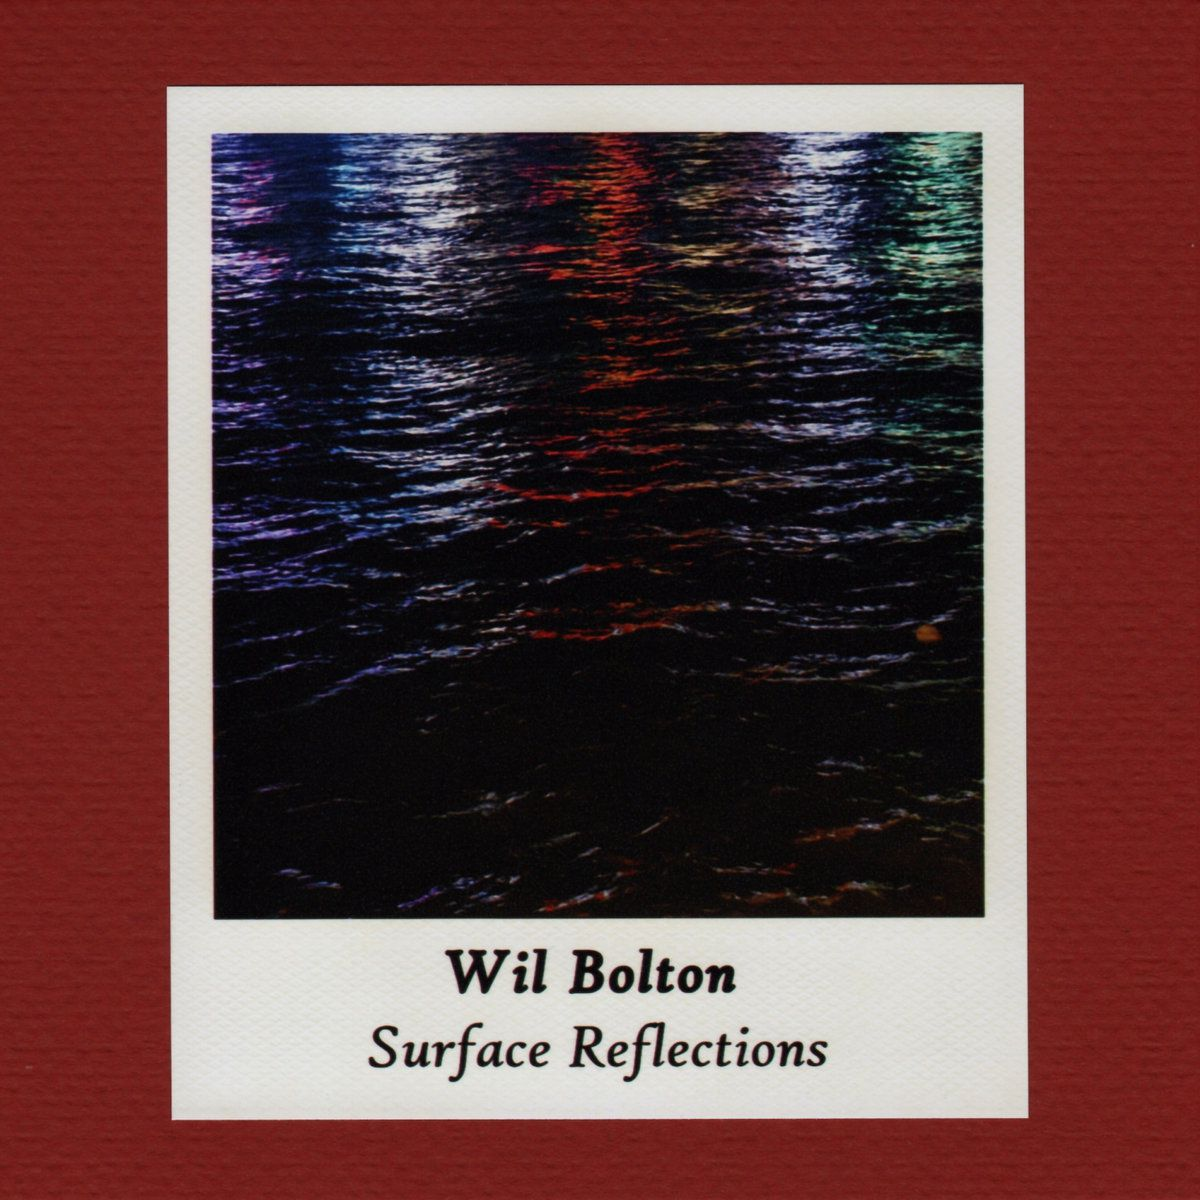 Surface Reflections